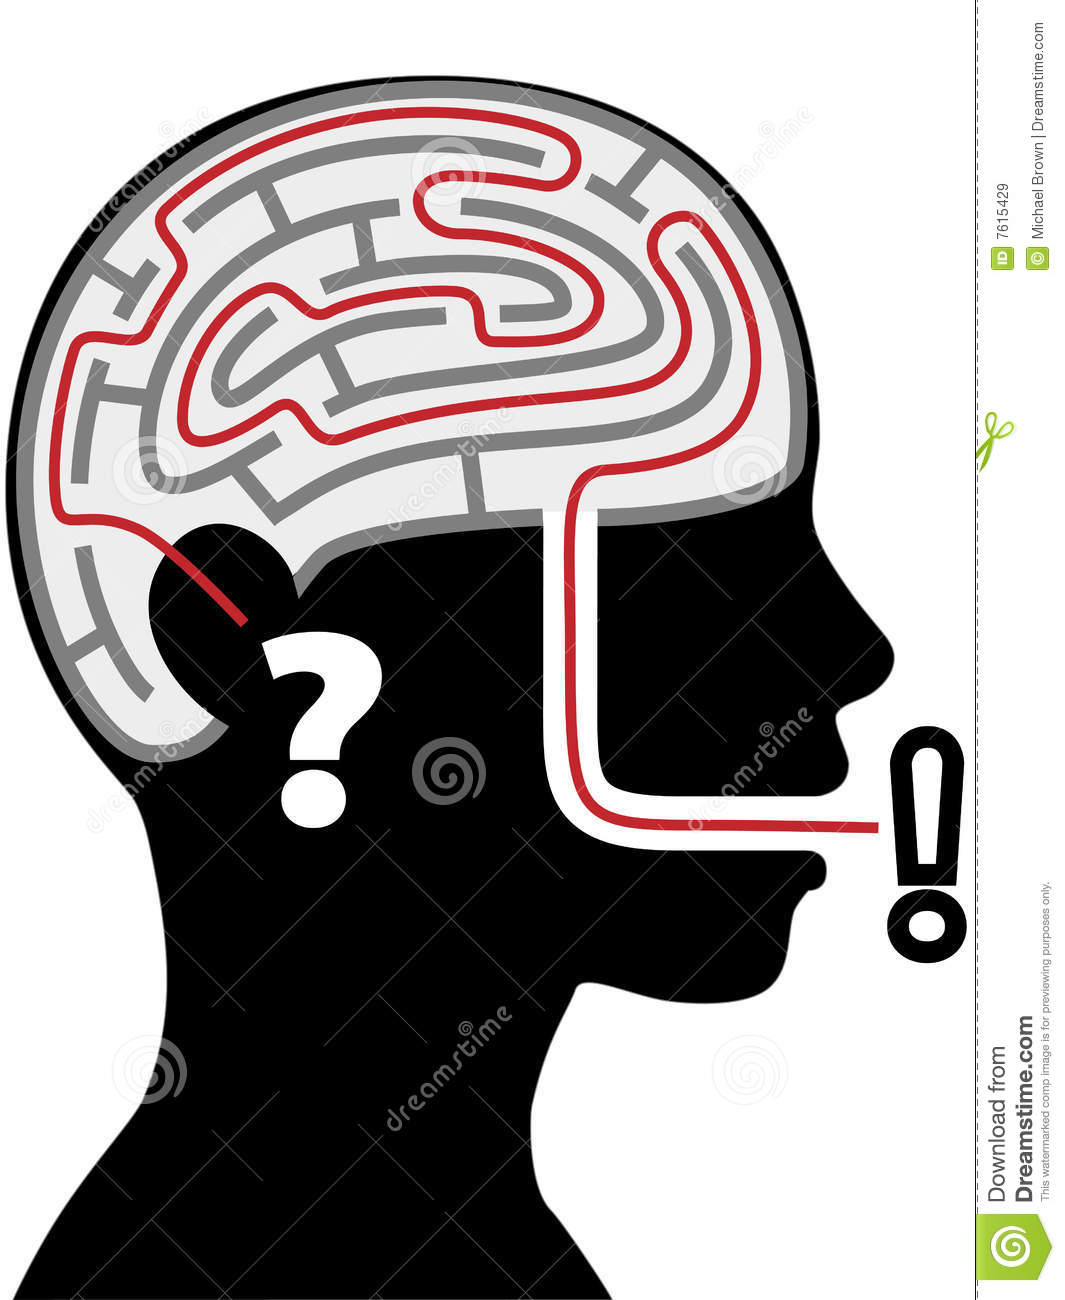 Maze puzzle silhouette person head question answer